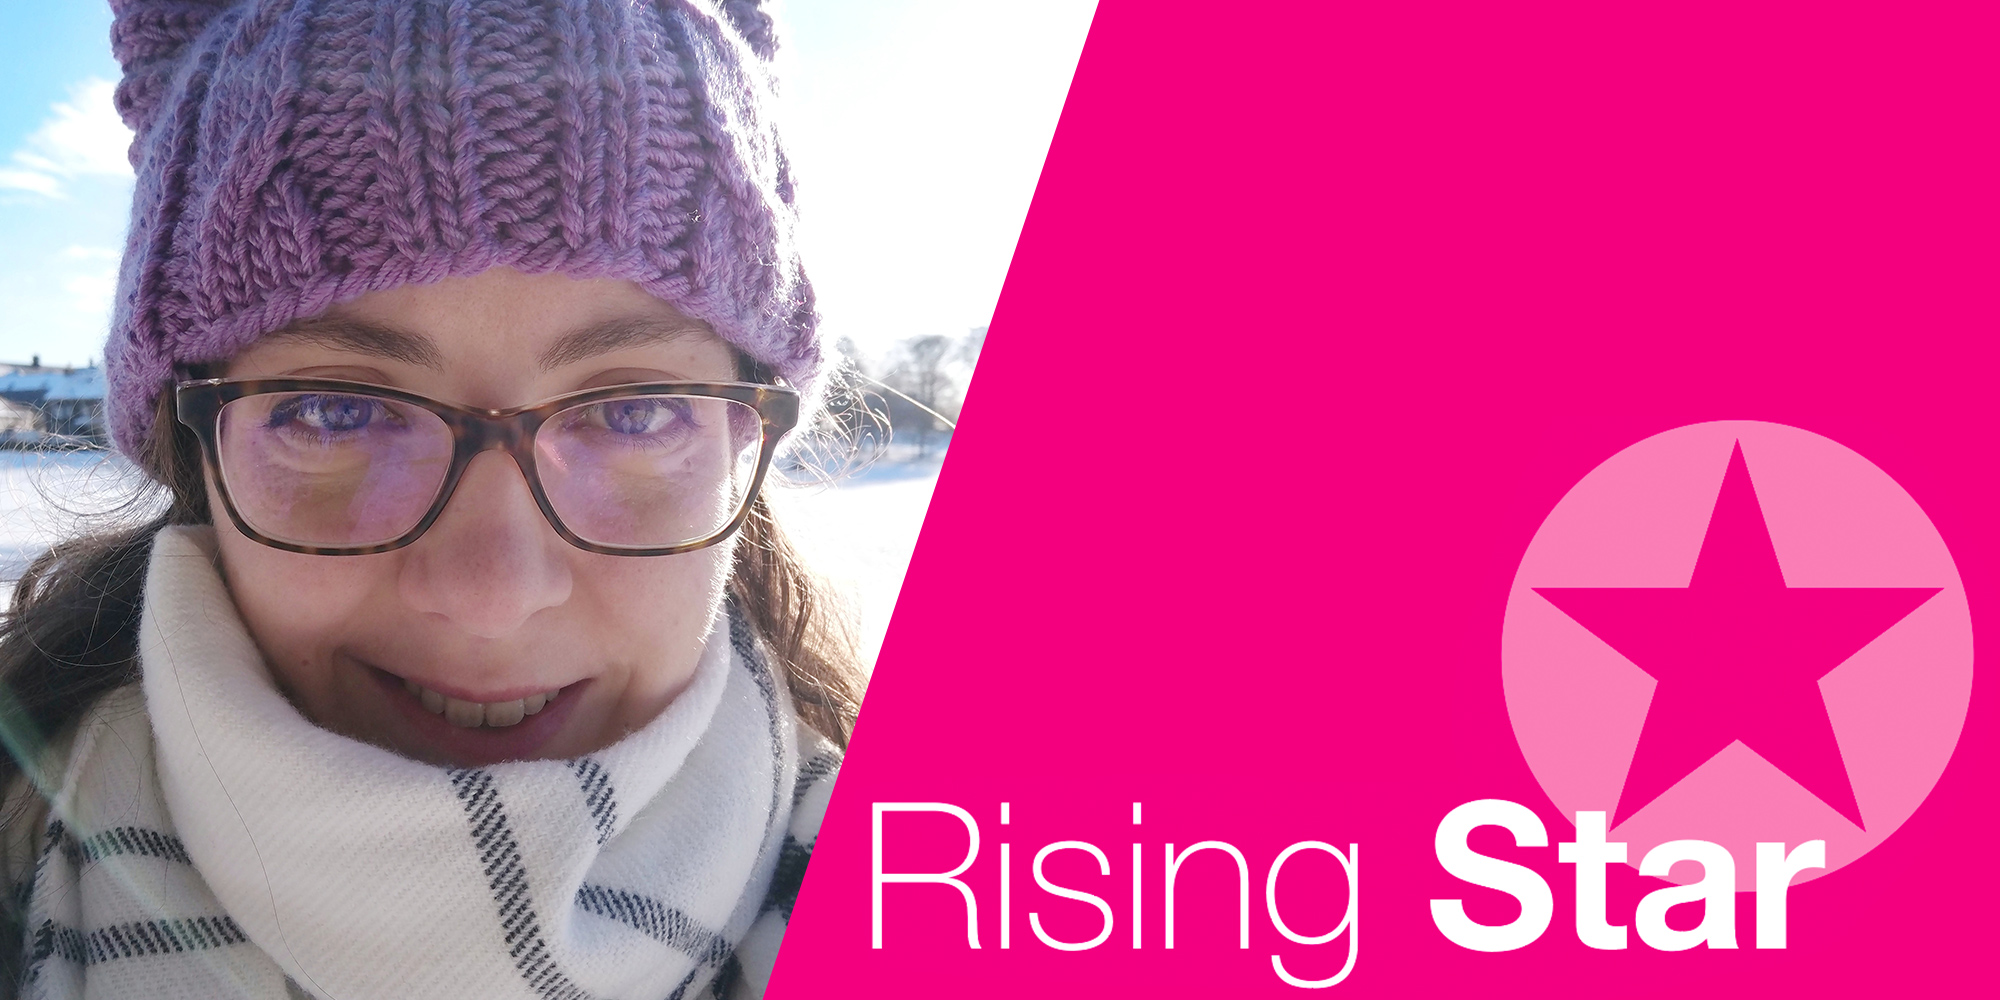 Rising Star: Boss Alien's Maria Camenzuli on leaving Malta, imposter syndrome and creating a sense of wonder